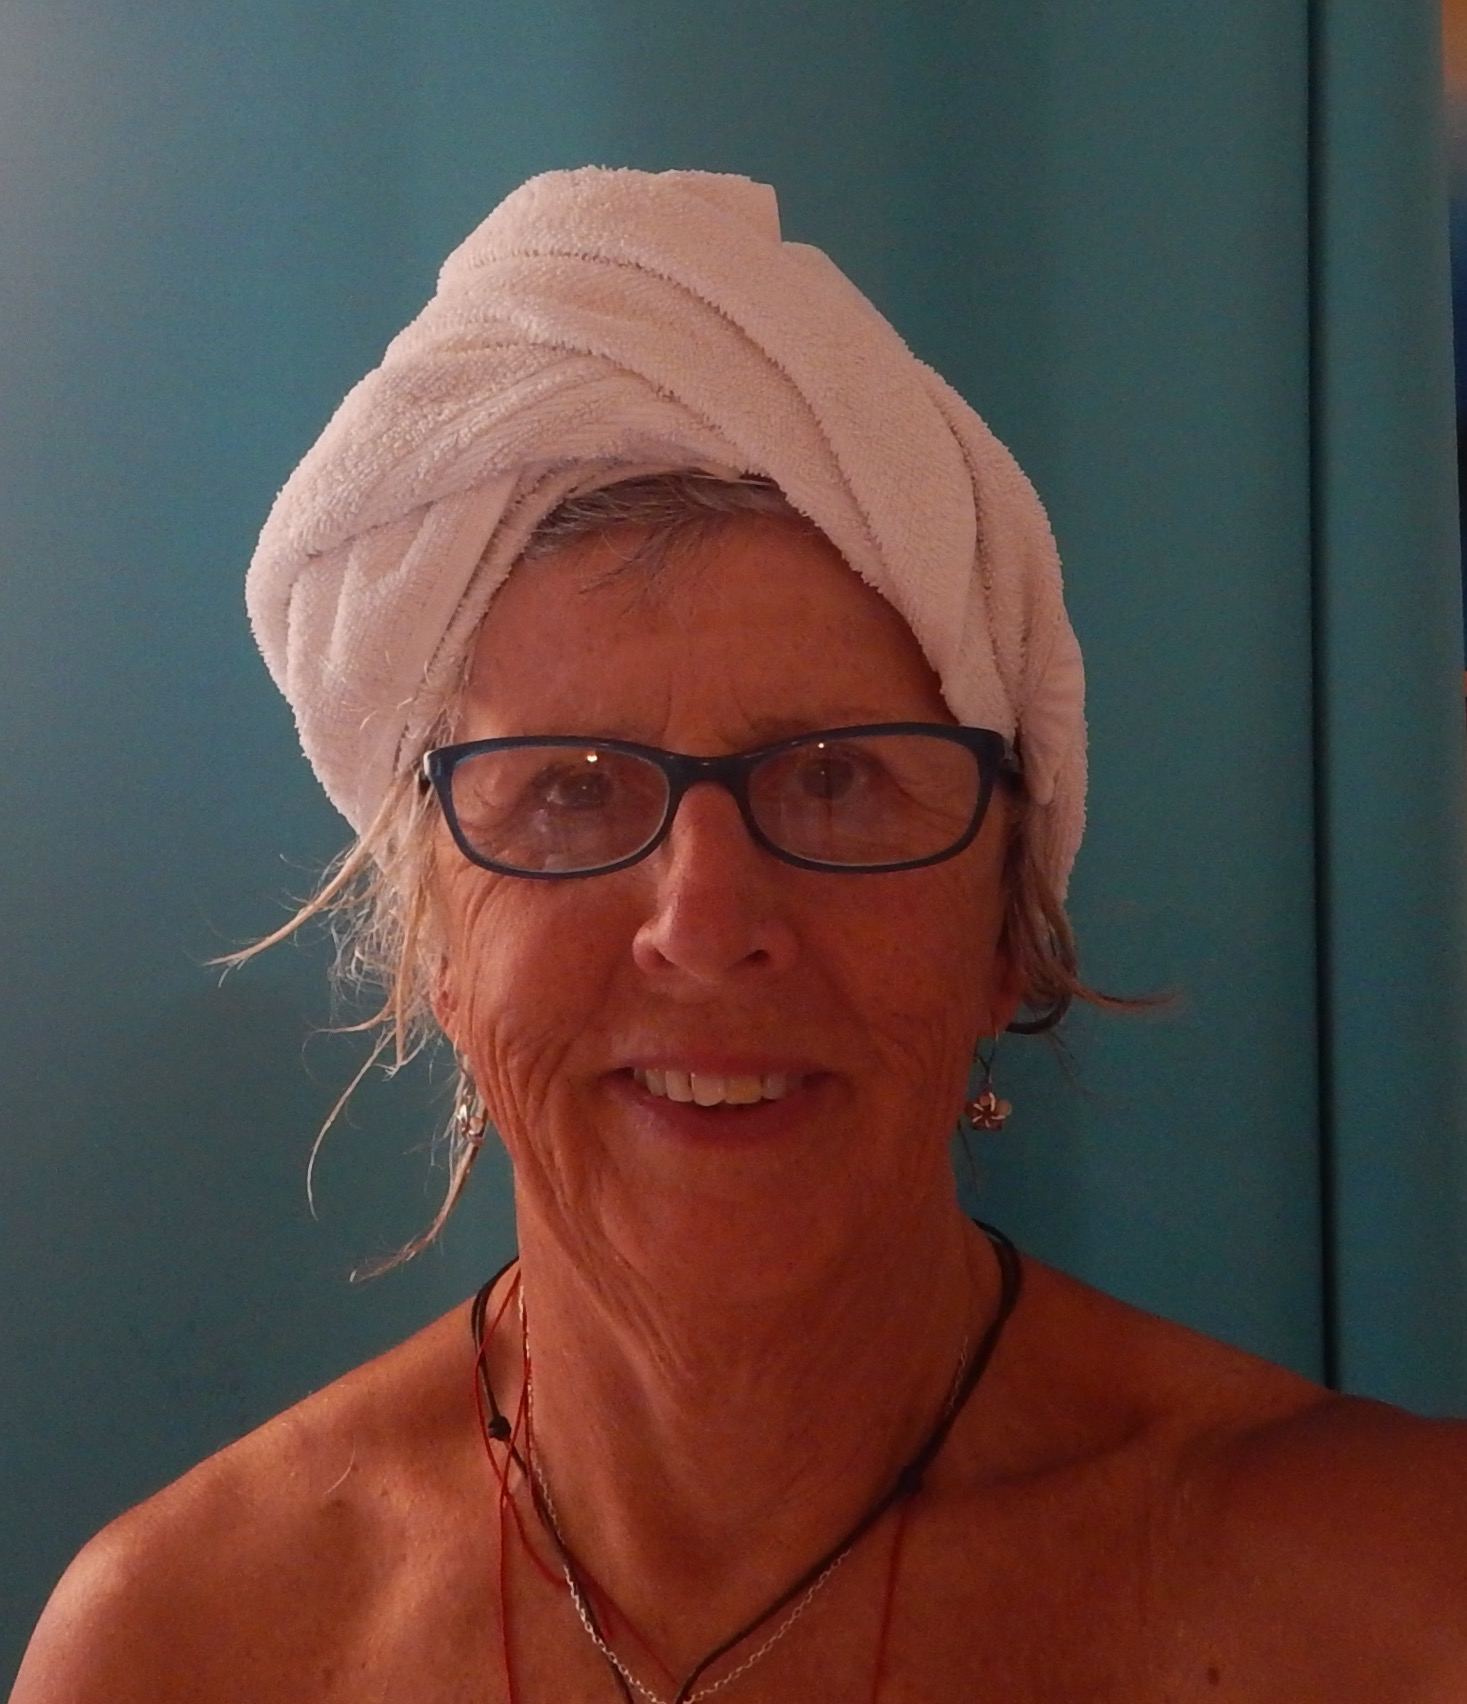 And then there is towel head after washing my hair in the shower!!